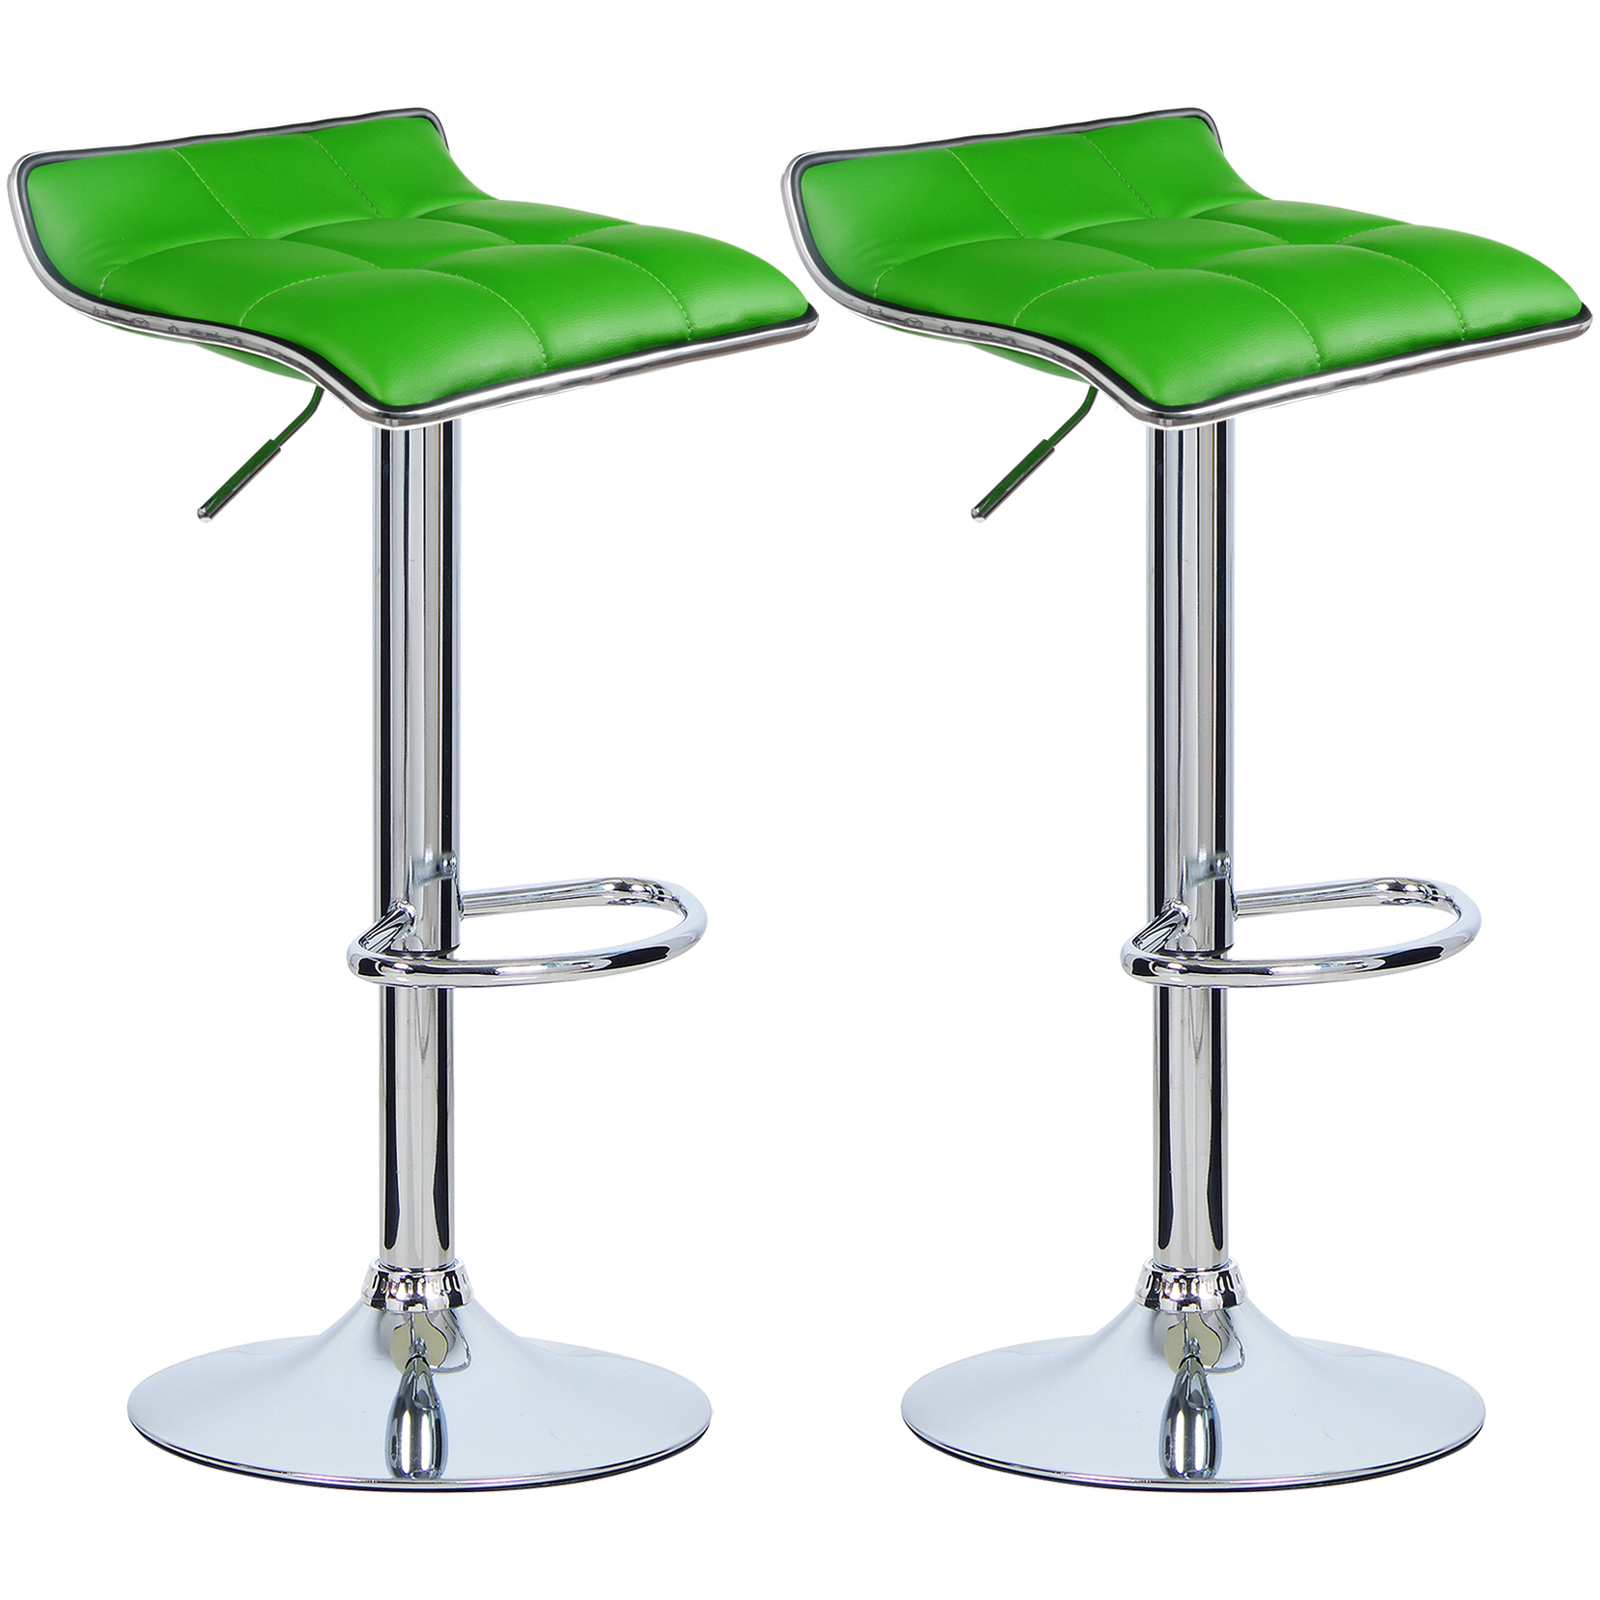 2 tabourets de bar r glable cuir synth tique cuisine - Chaise bar reglable ...